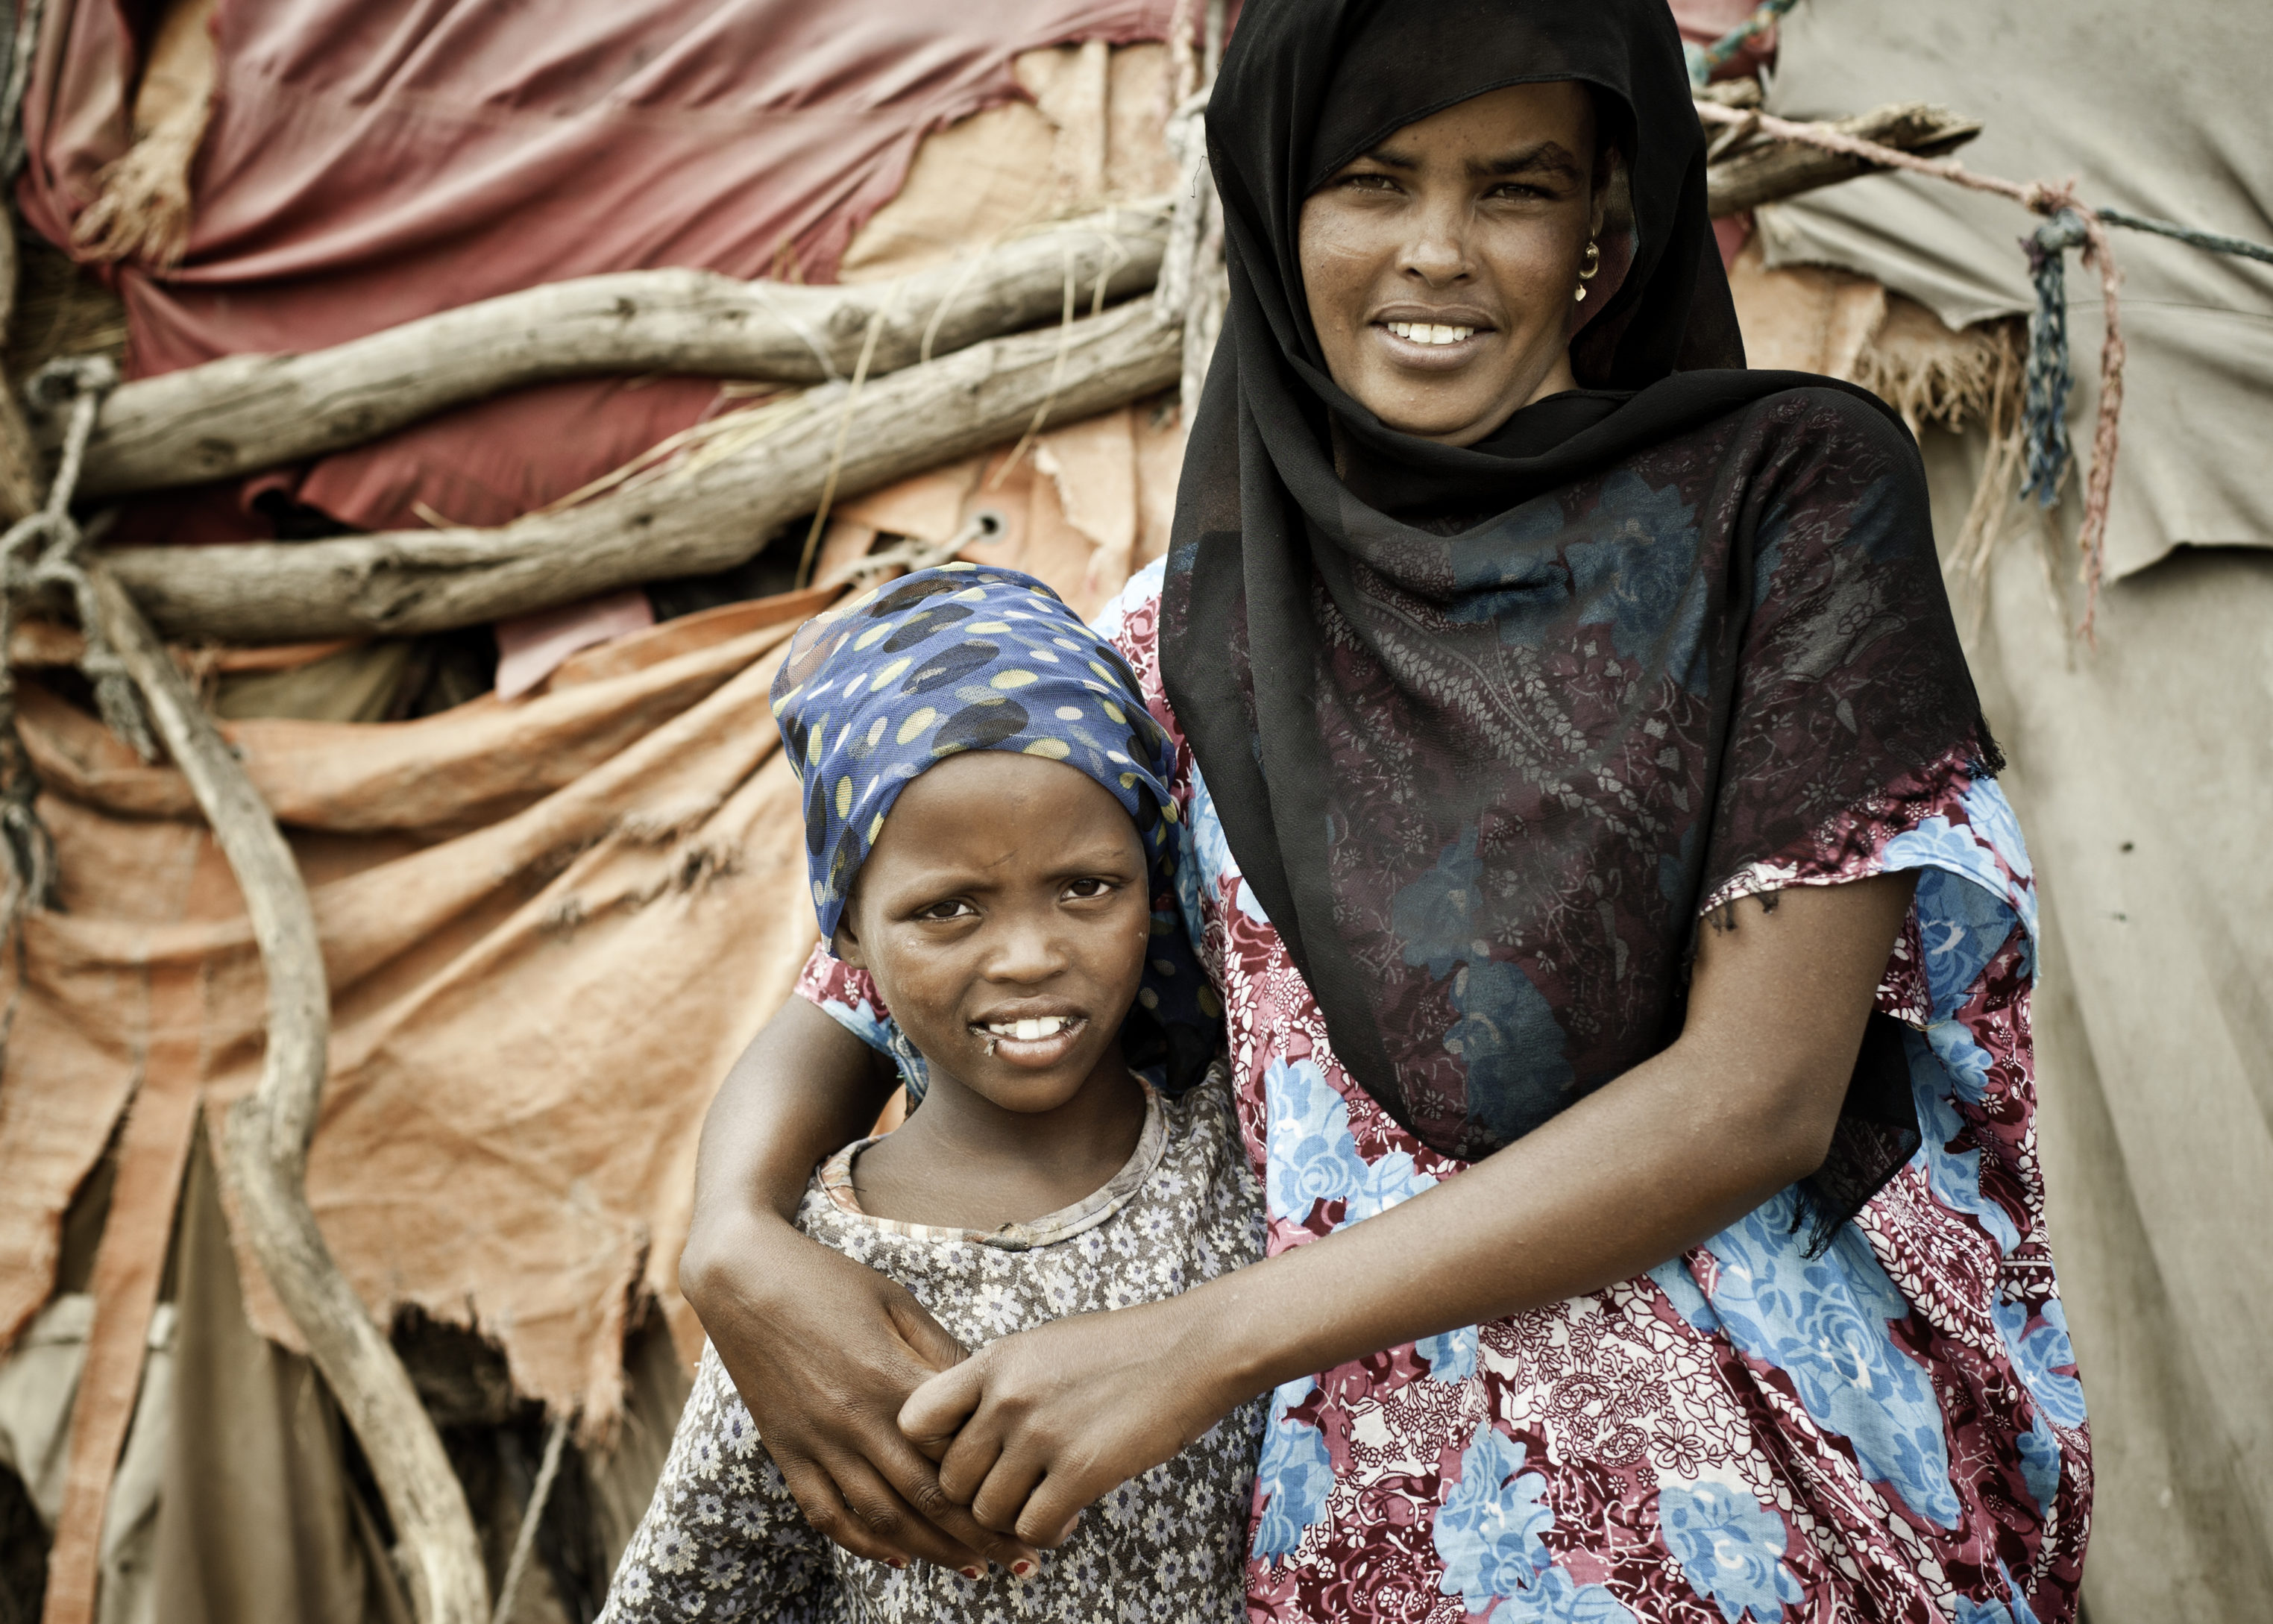 Somali Mother And Daughter Pose For The Camera, Standing In Front Of Their Rustic Home Which Is A Hut Made From Tree Branches And Textiles.